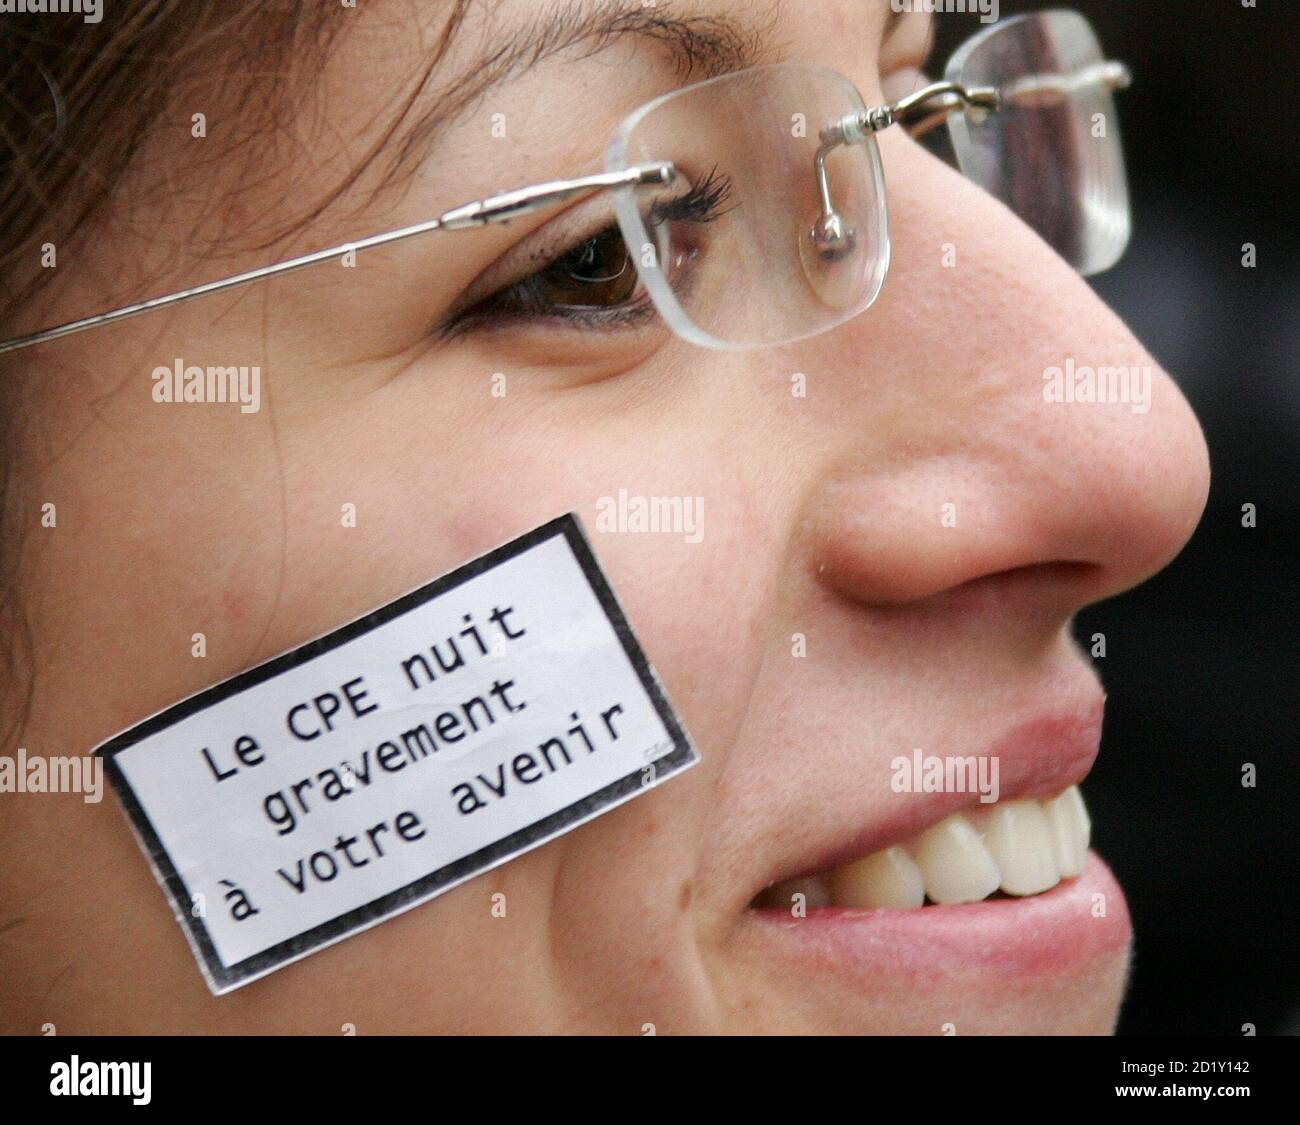 """A French student sticks sign on face which reads """"CPE is harmful to future"""" in protest against the government's new plan for reducing joblessness, in Lille, northern France March 16, 2006. The new job contract, known as the CPE, would allow firms to hire youths under 26 for a two-year trial period before offering them a permanent job. Stock Photo"""